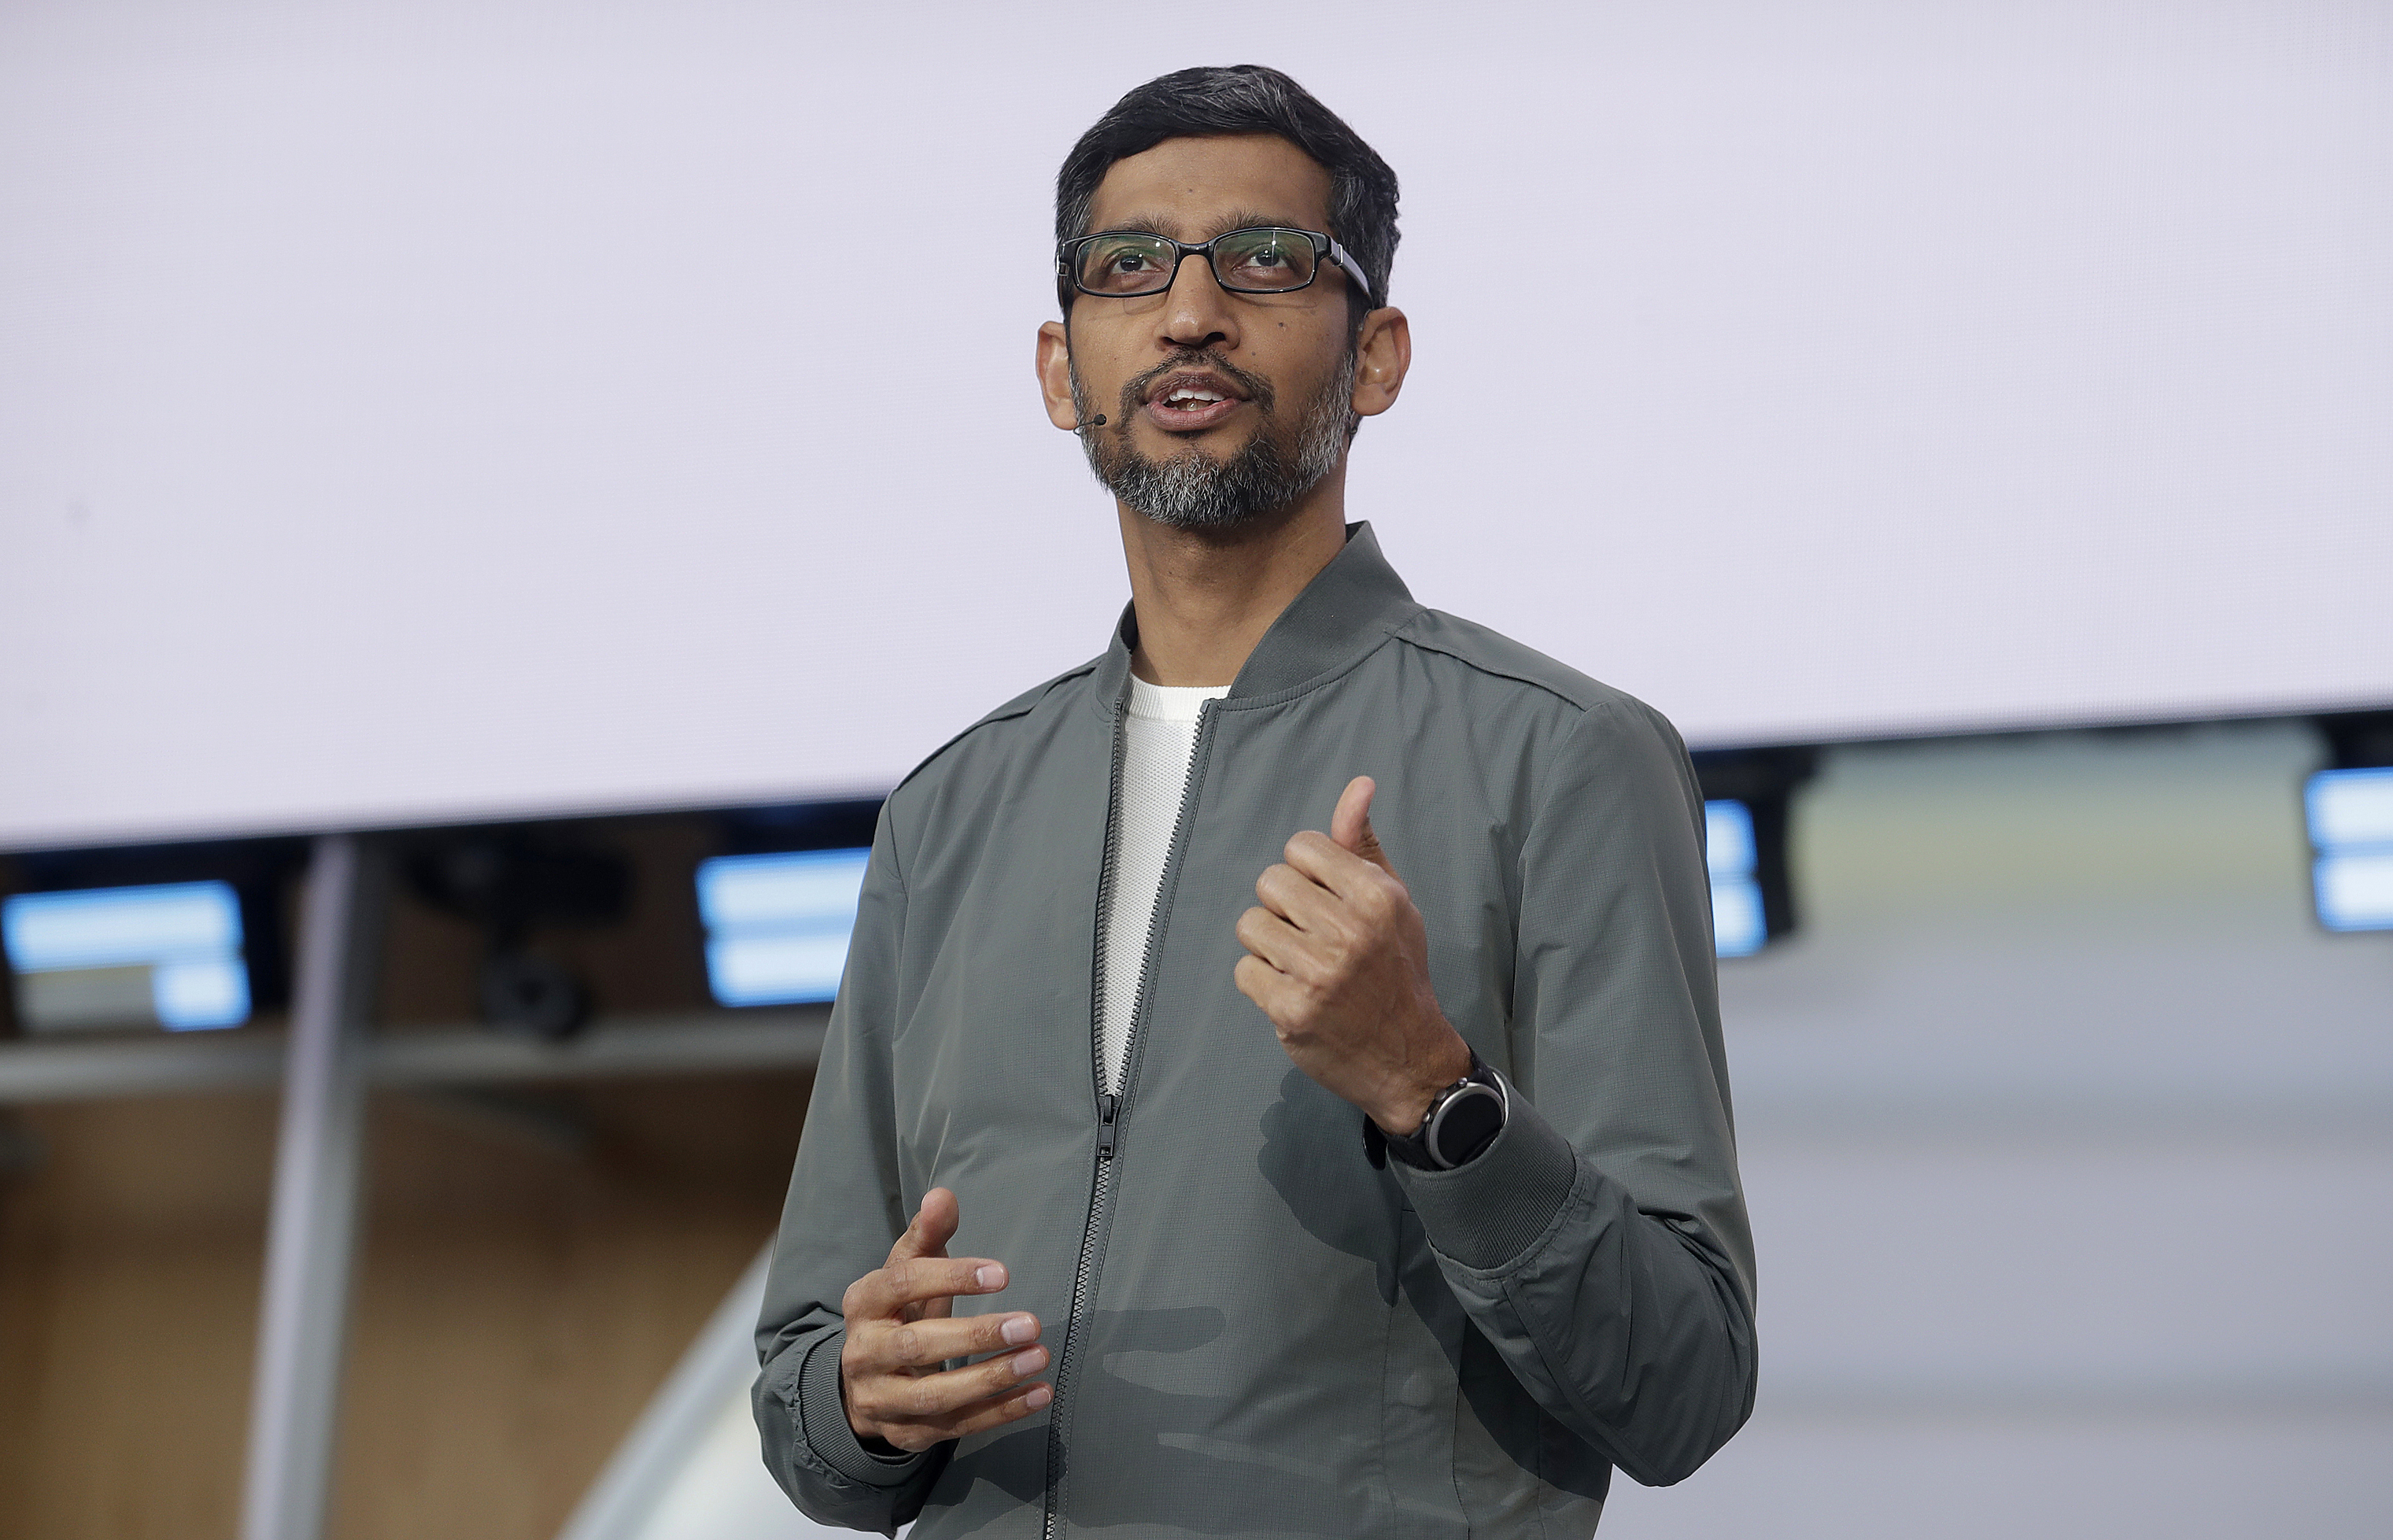 Google CEO Sundar Pichai speaks during the keynote address of the Google I/O conference